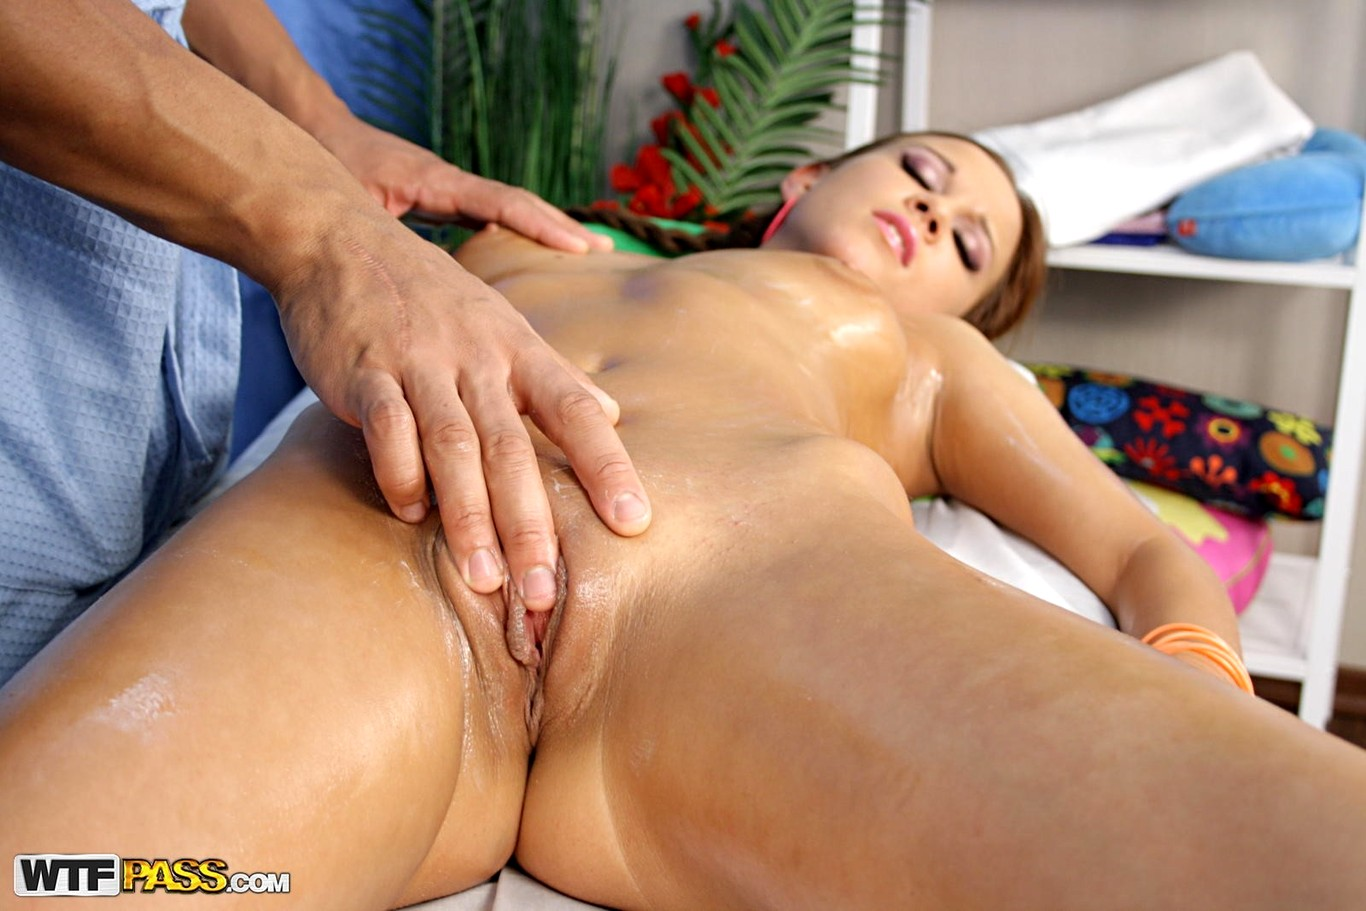 Bbw free streaming massage porn